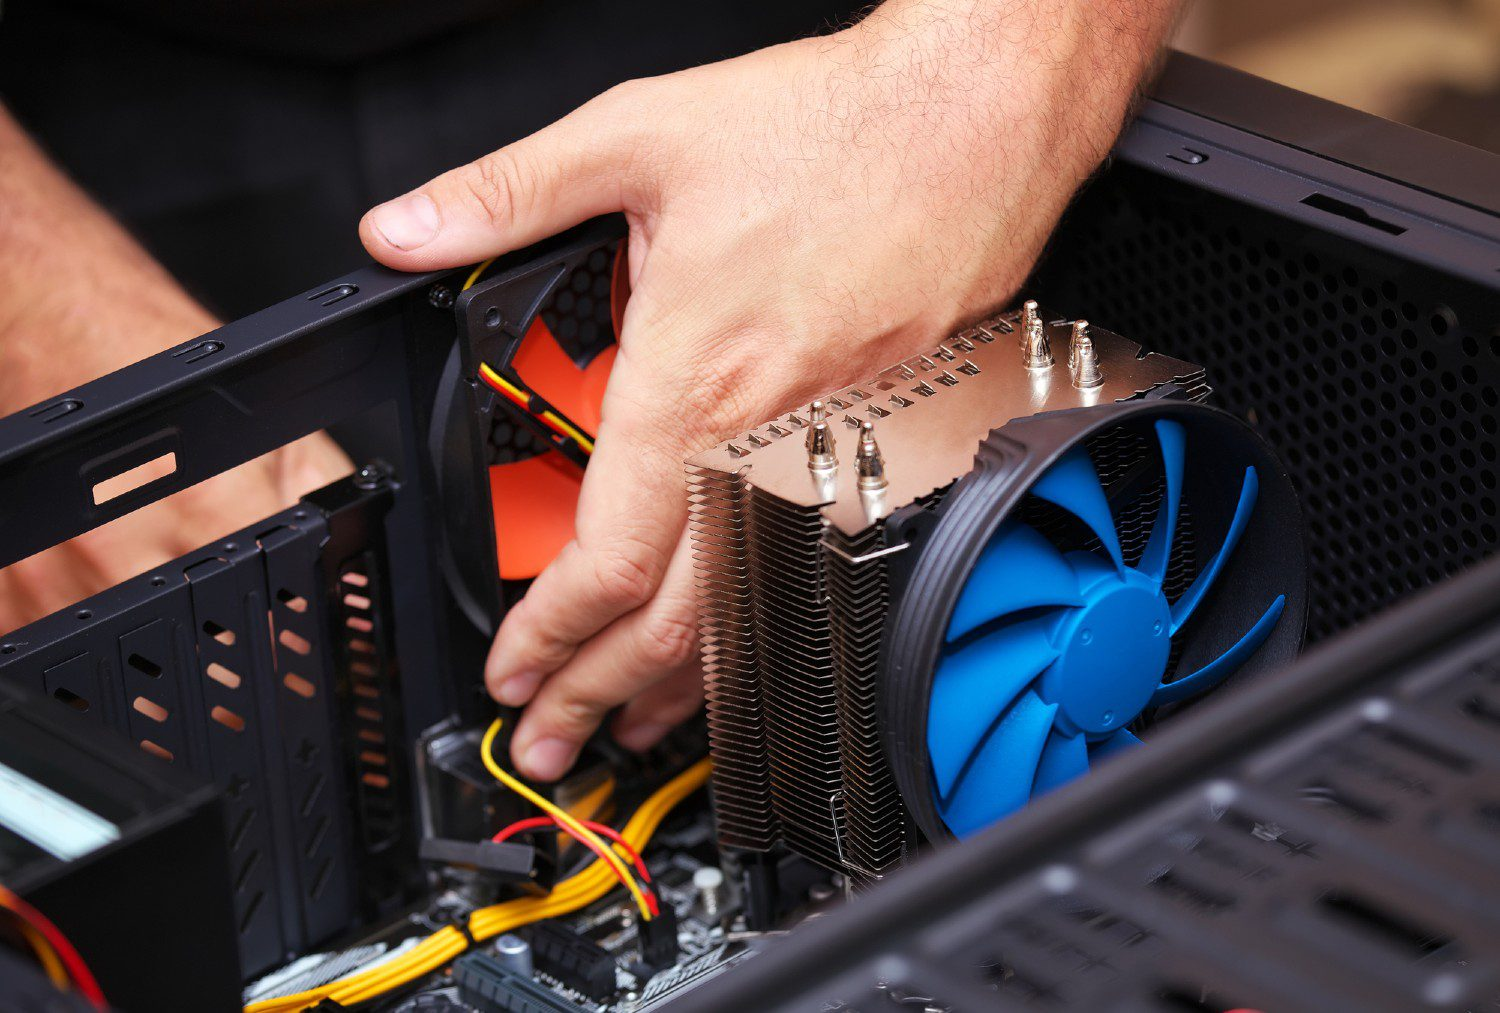 Close-up photo of a person building a PC